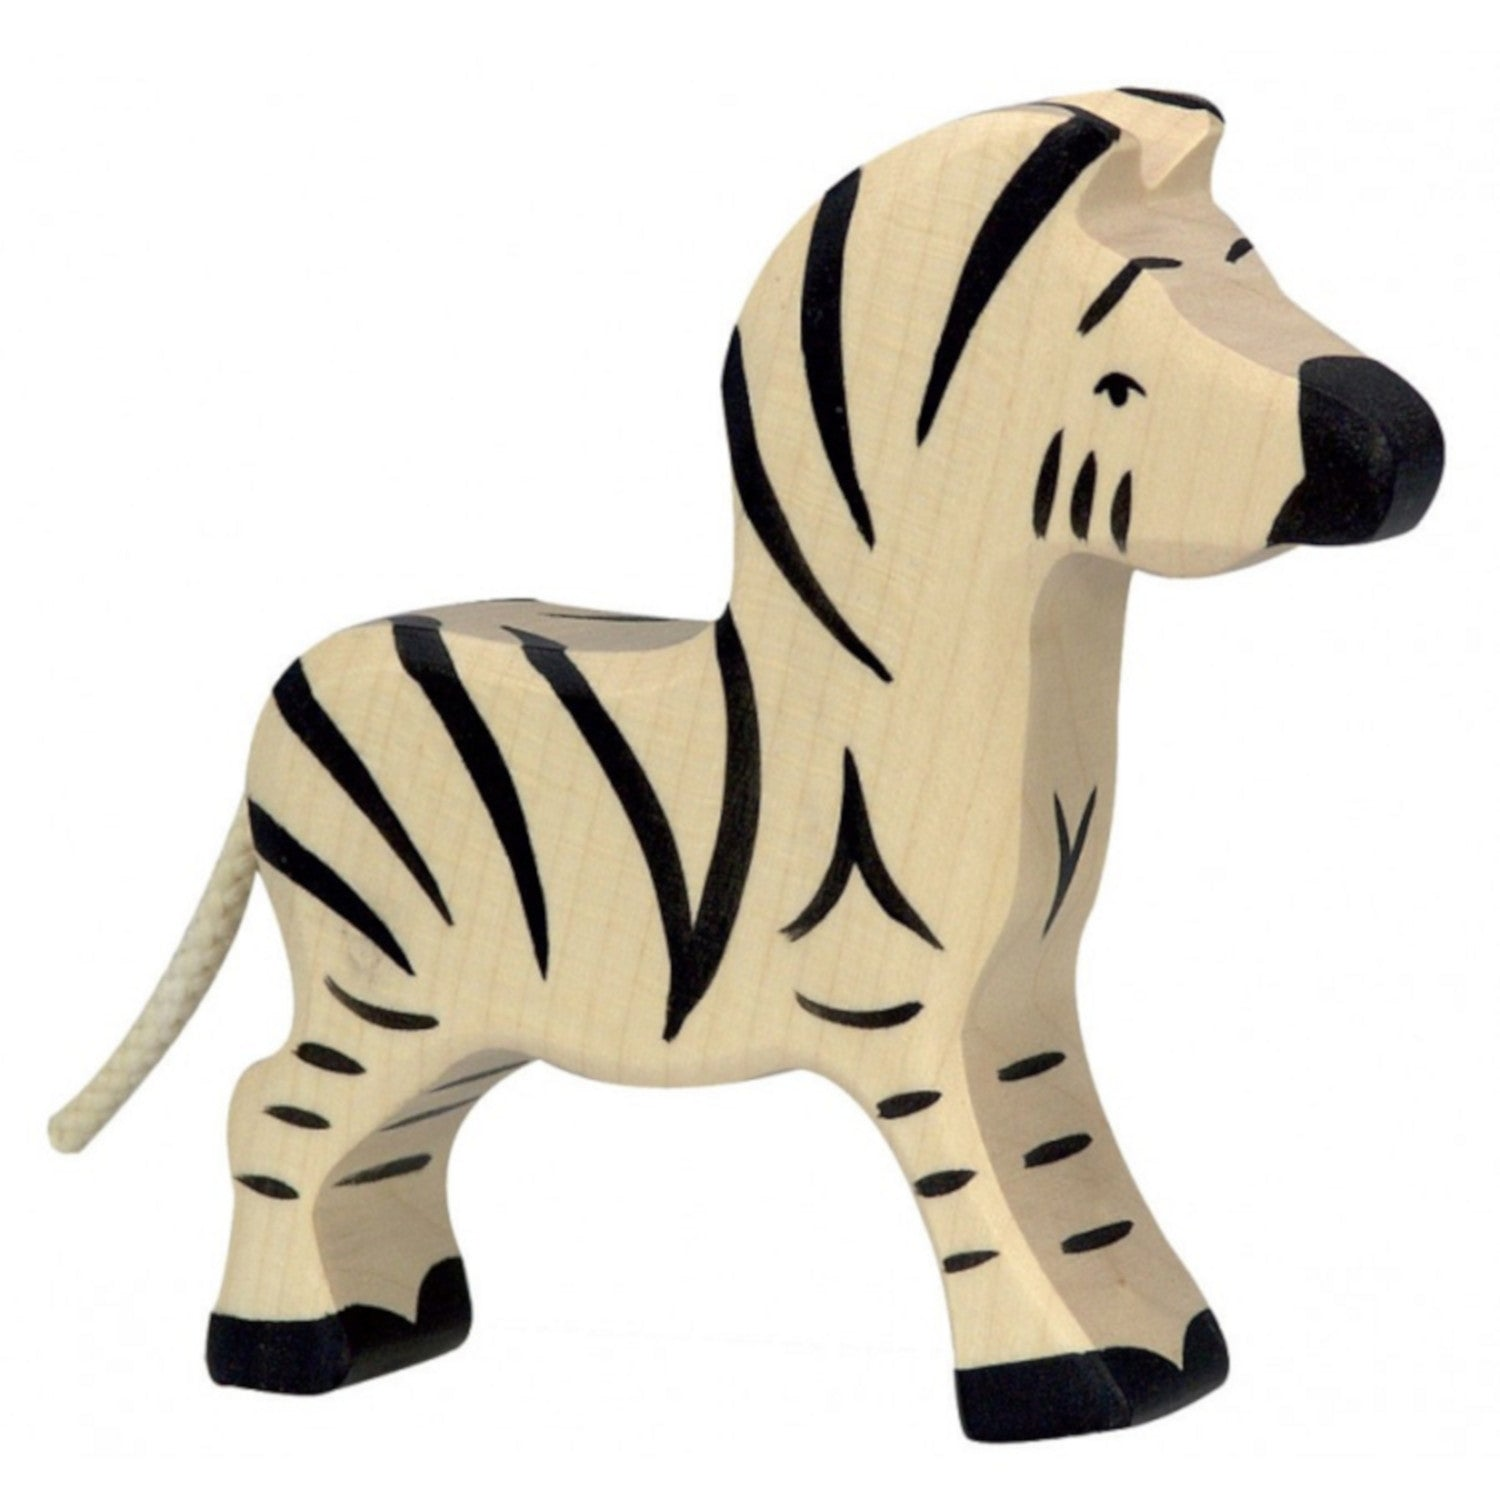 Holztiger wooden hand carved zebra baby foal figurine imaginative play